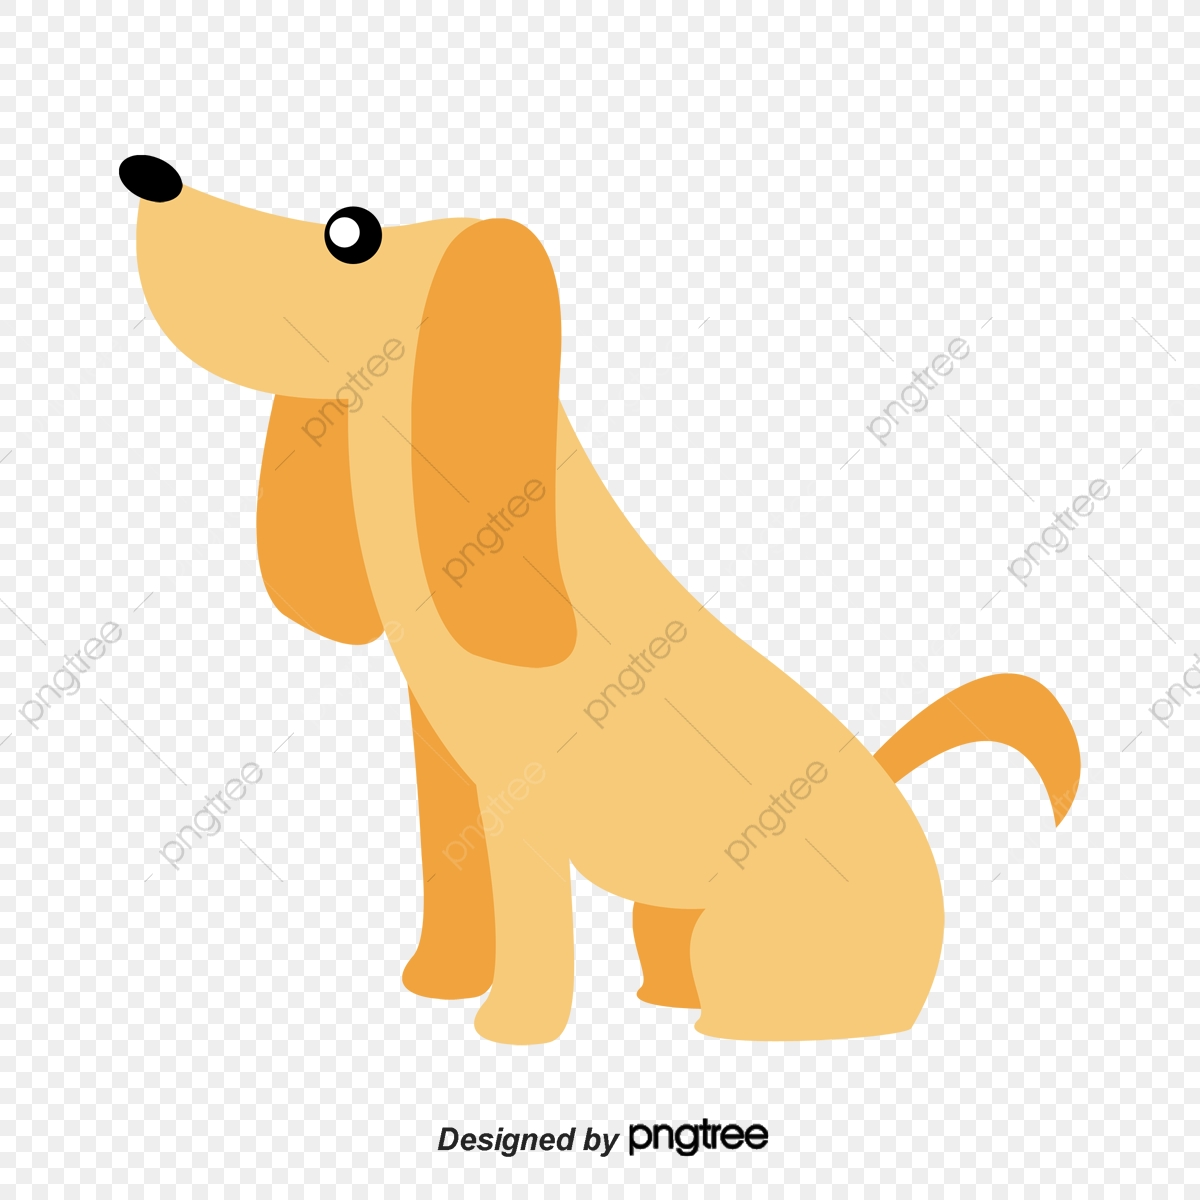 Cartoon Puppy Pet Cute Dog Cartoon Dog Puppy Tongue Out Cartoon Png Transparent Clipart Image And Psd File For Free Download